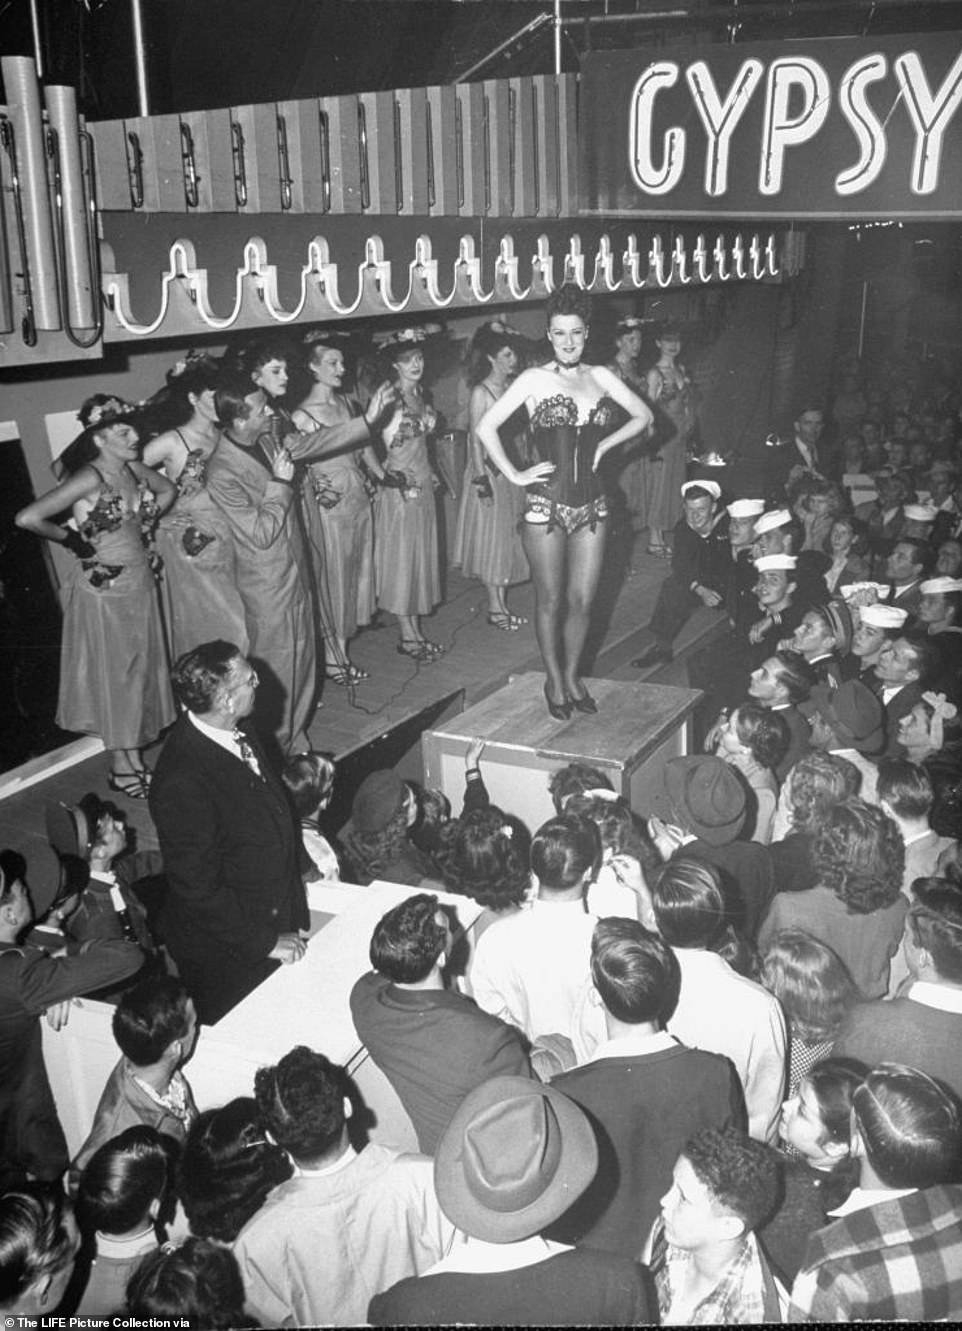 Gypsy Rose Lee told bawdy jokes with sharp comedic timing. Above, she laughs and soaks up cheers from the crowd imploring her to 'take it off.' The New York Times wrote: 'she eschewed the traditional crudities of burlesque.The burlesque entertainer was world-famous for her act, that included